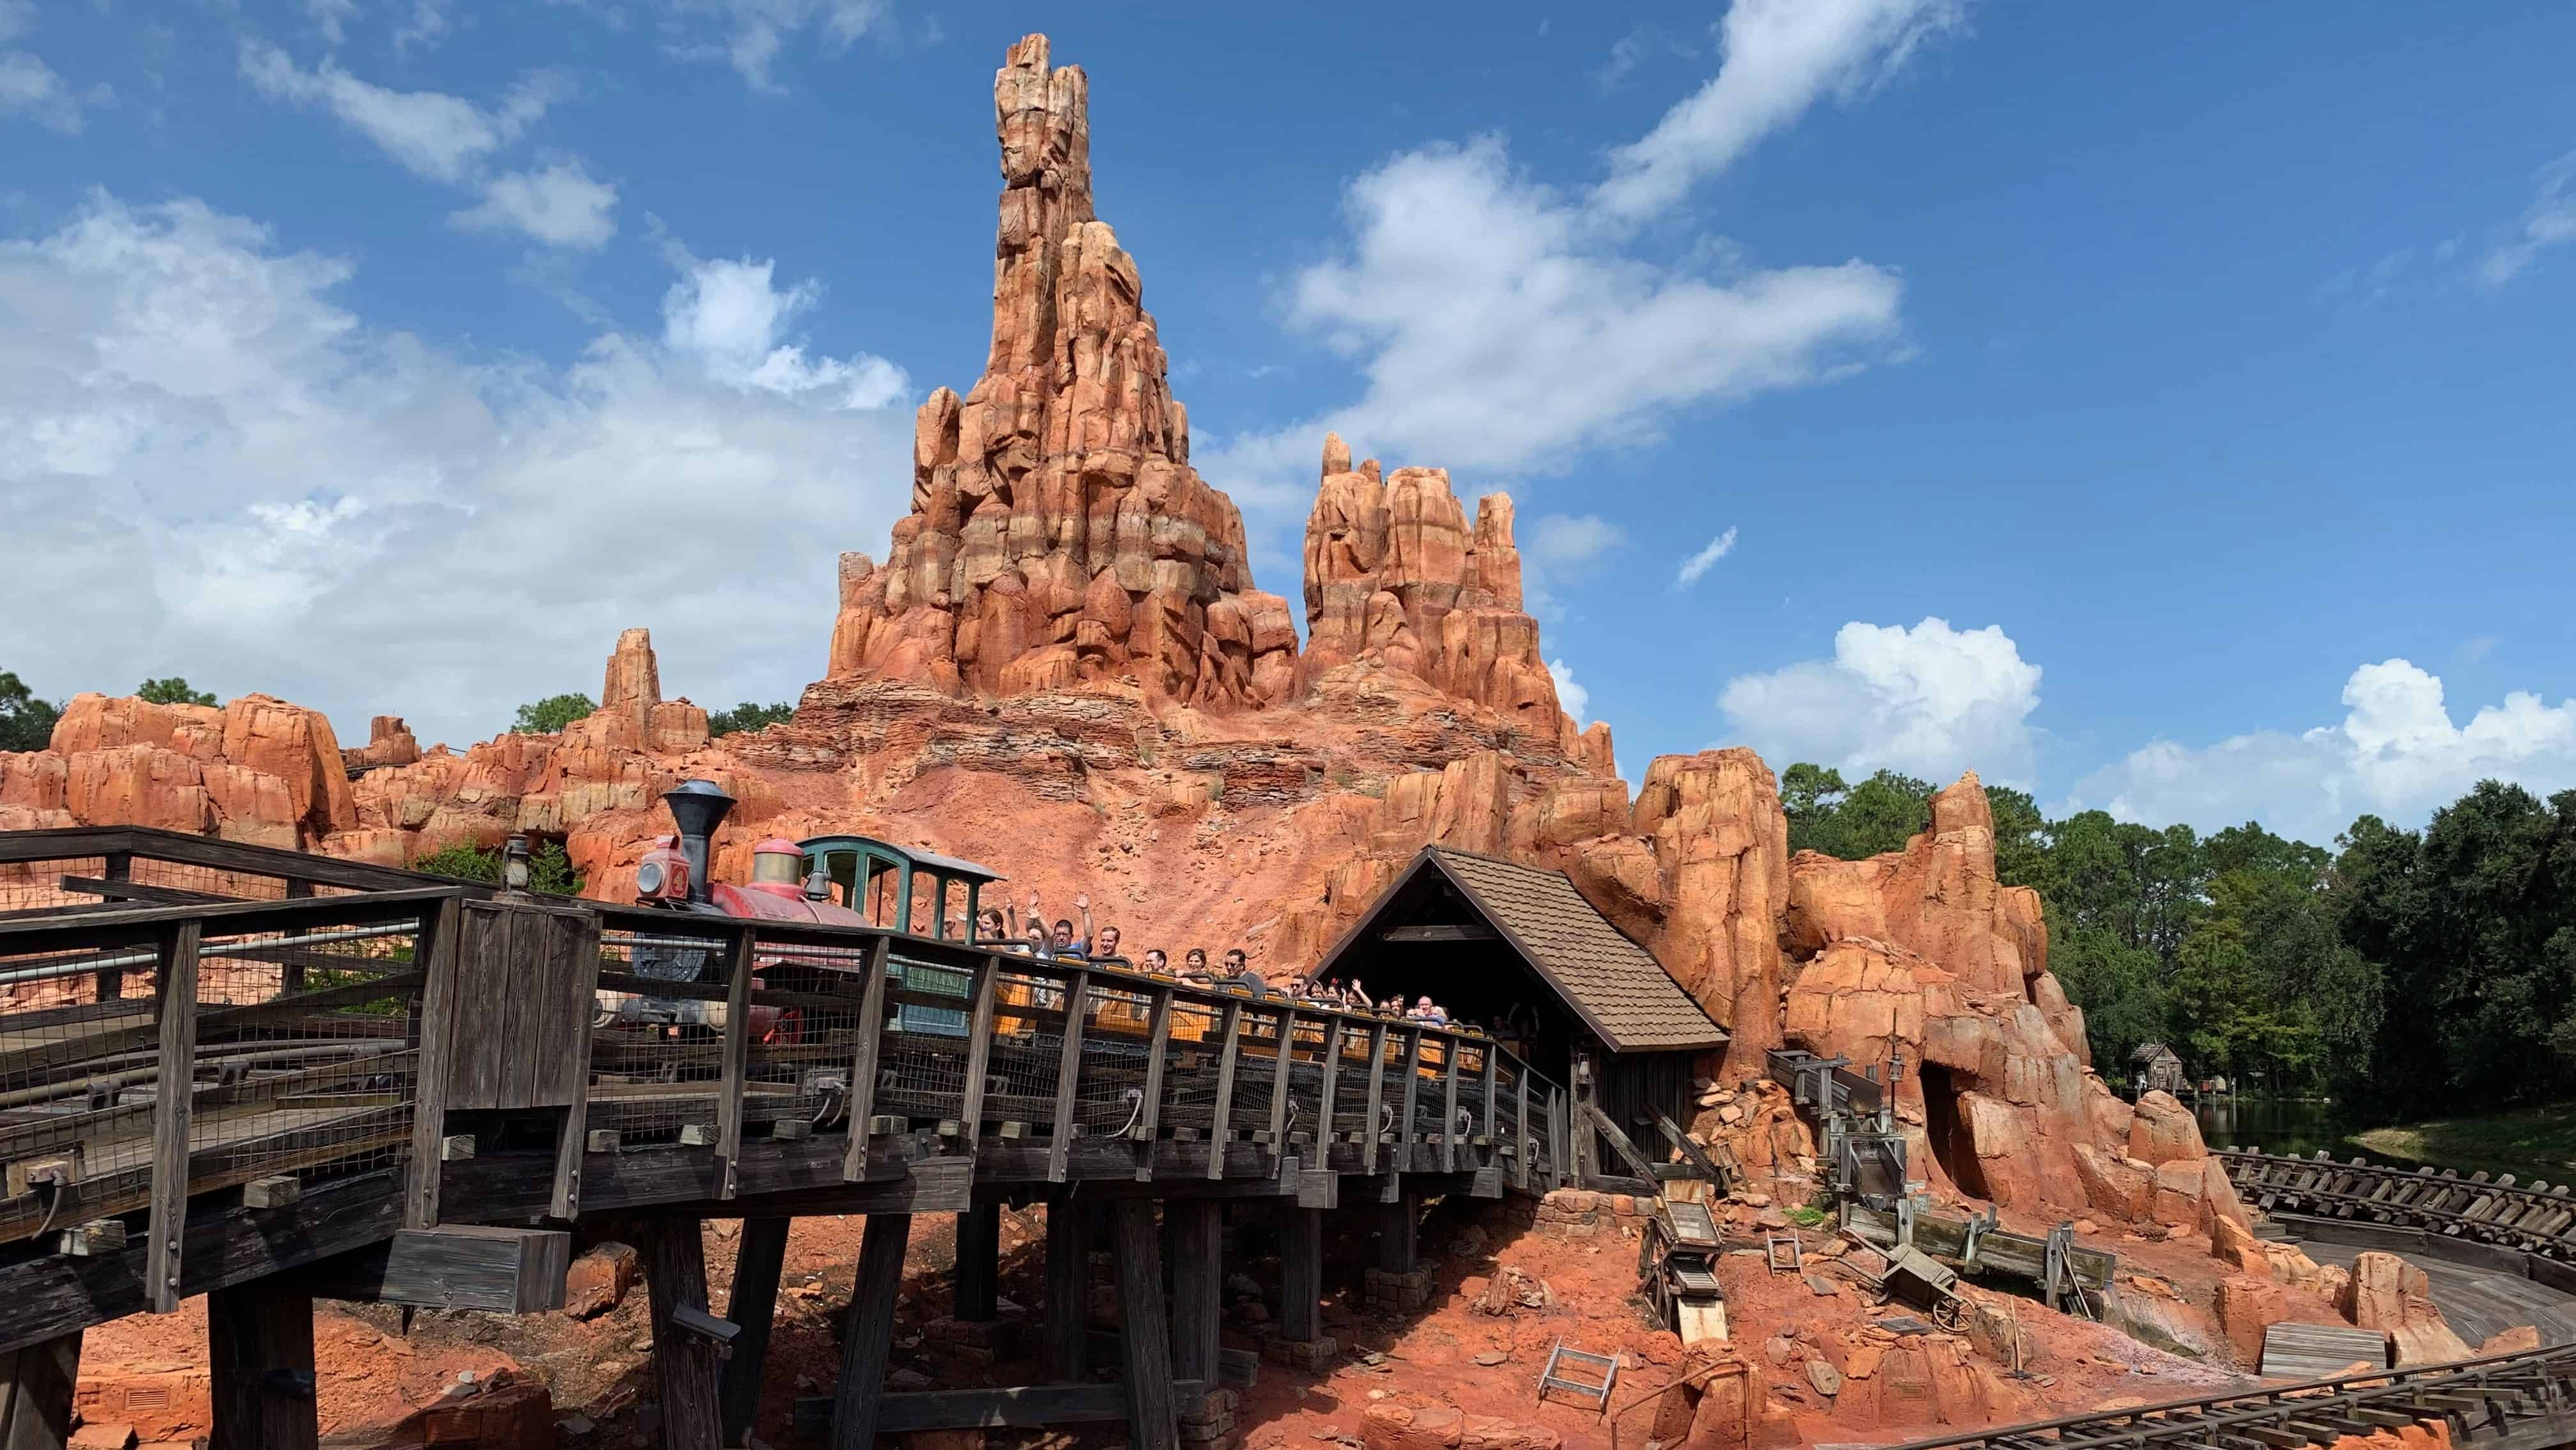 The Best Spots to Take Photos at Disney World